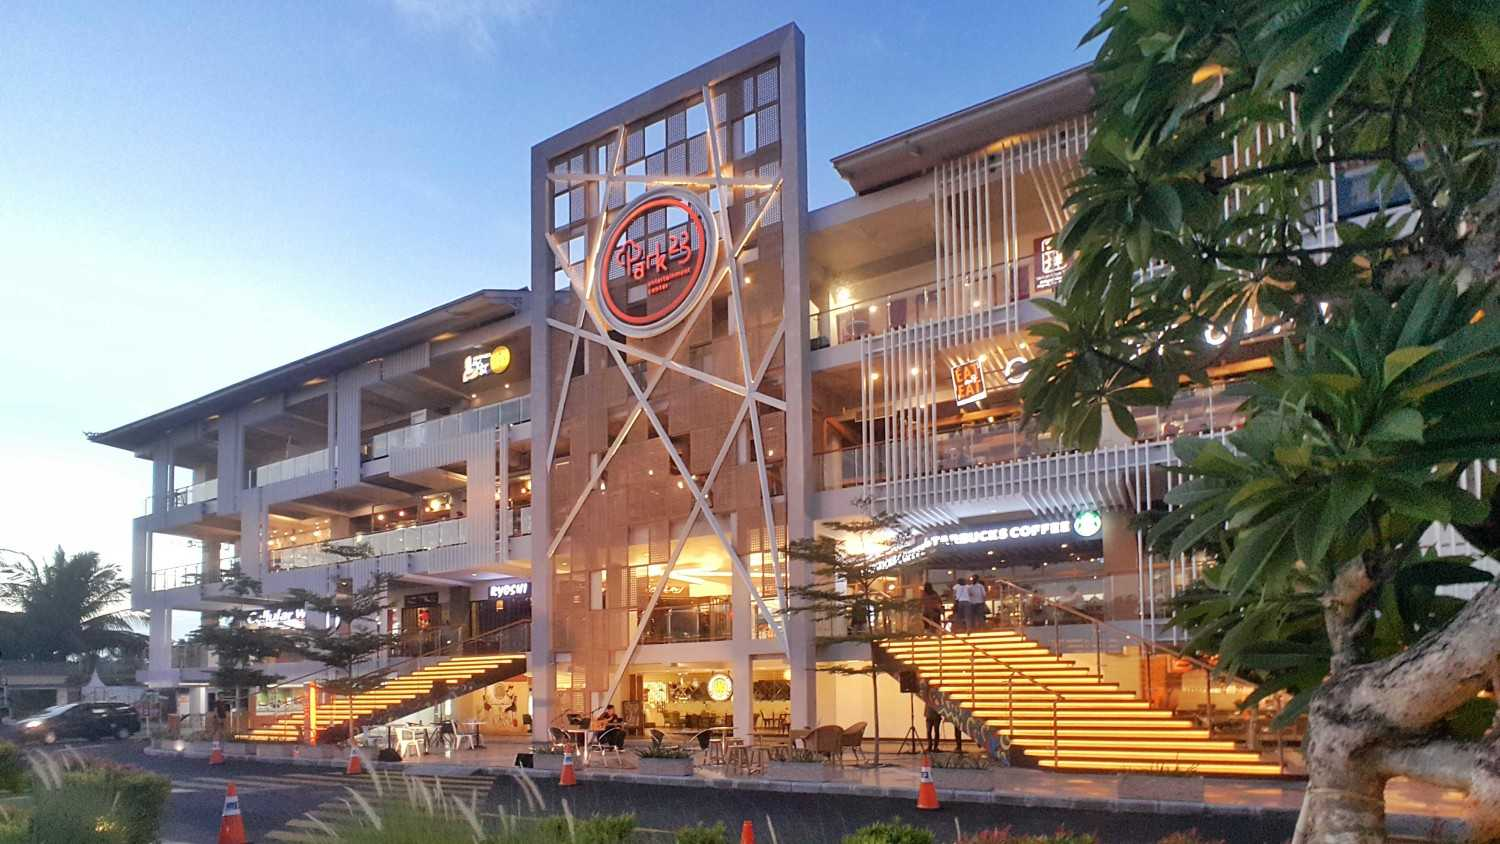 Parametr Indonesia The Park Mall Waterpark Bali Tuban, Bali Tuban, Bali Facade View Contemporary 19032